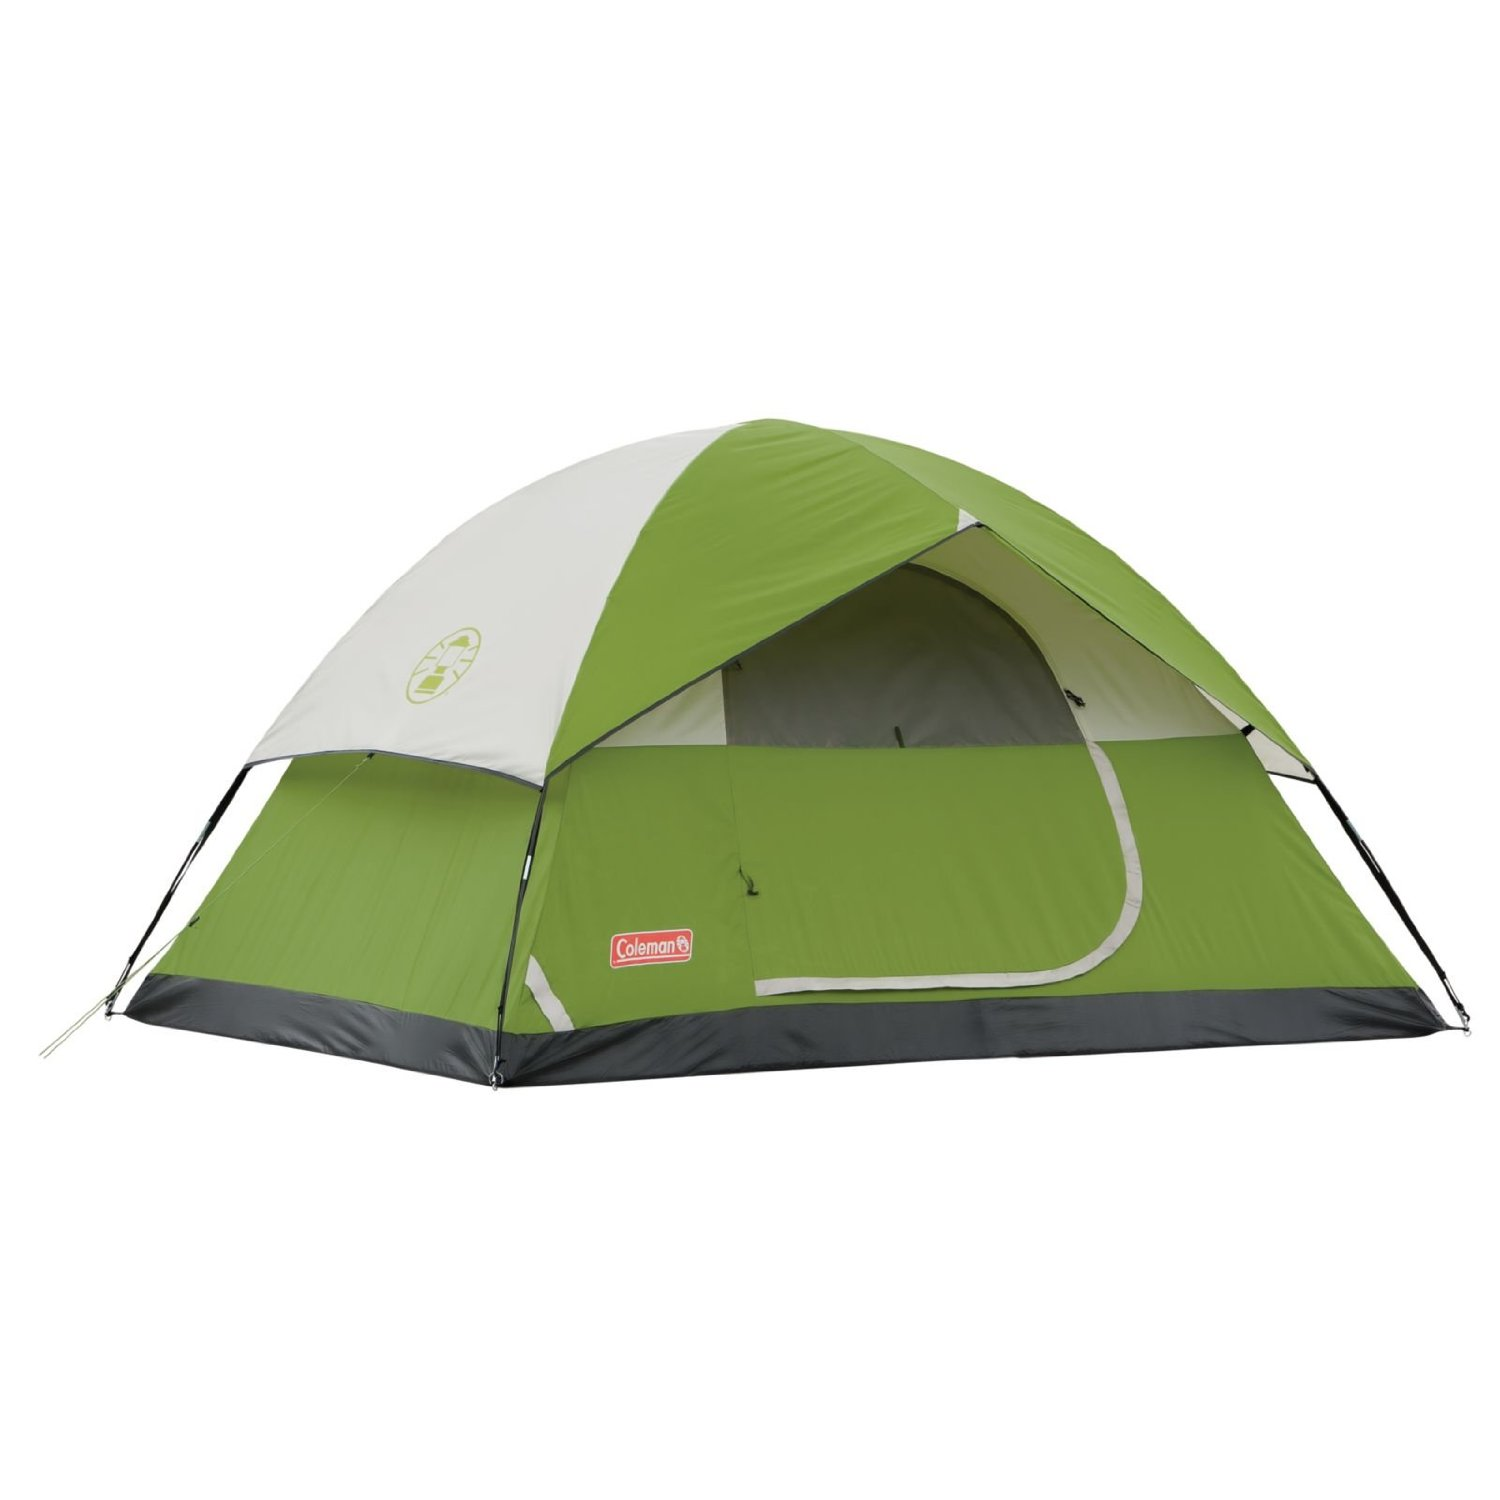 1500x1500 Best Family Camping Tents Reviews Of 2017